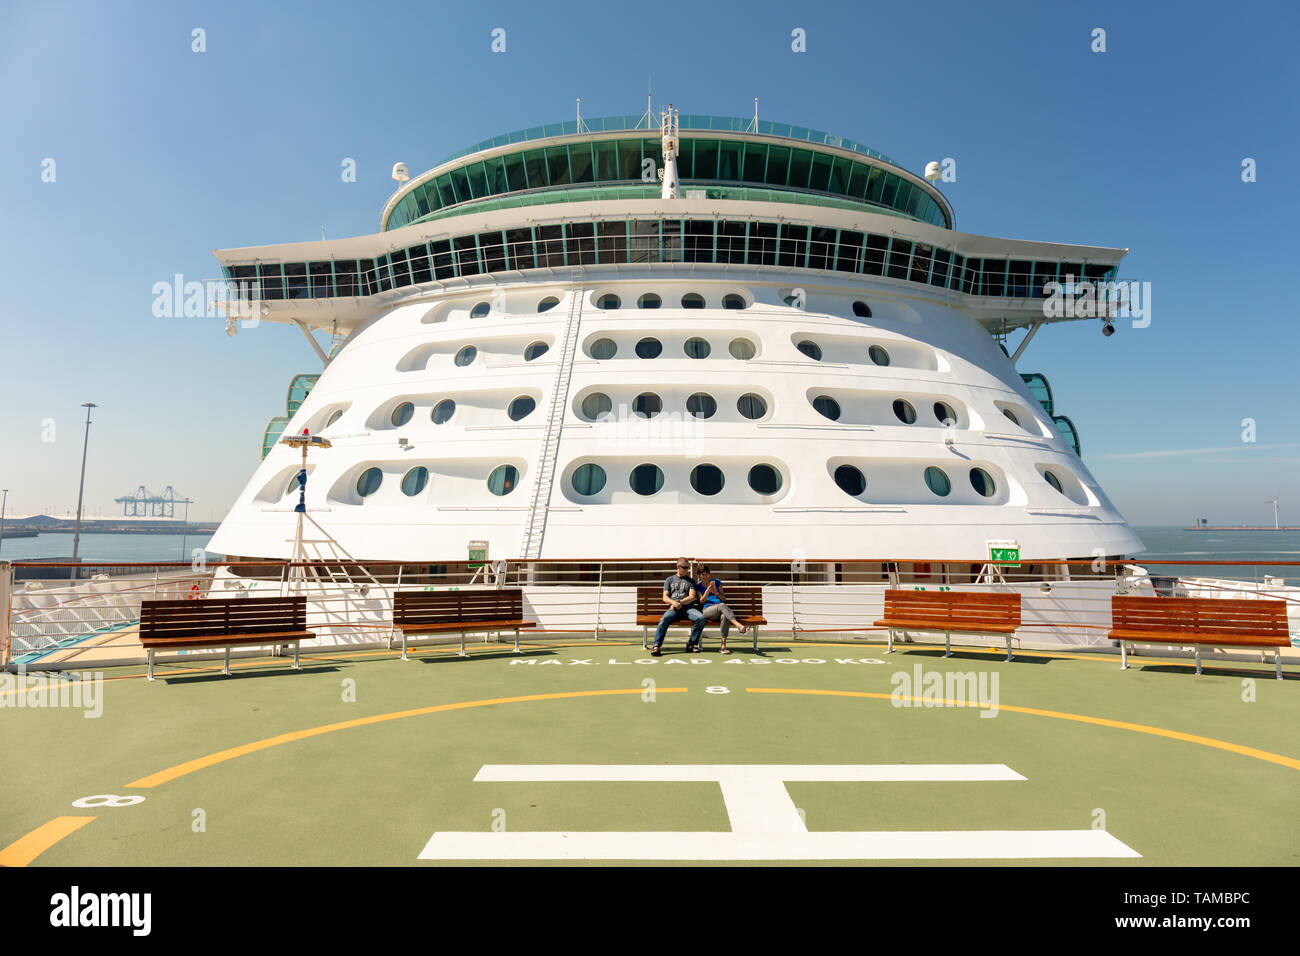 Independence of the Seas Cruise Ship; Zeebrugge, Belgium; 24th May 2019; View of Ship From Bow With Couple Seated on a Bench in Bright Sunny Weather - Stock Image